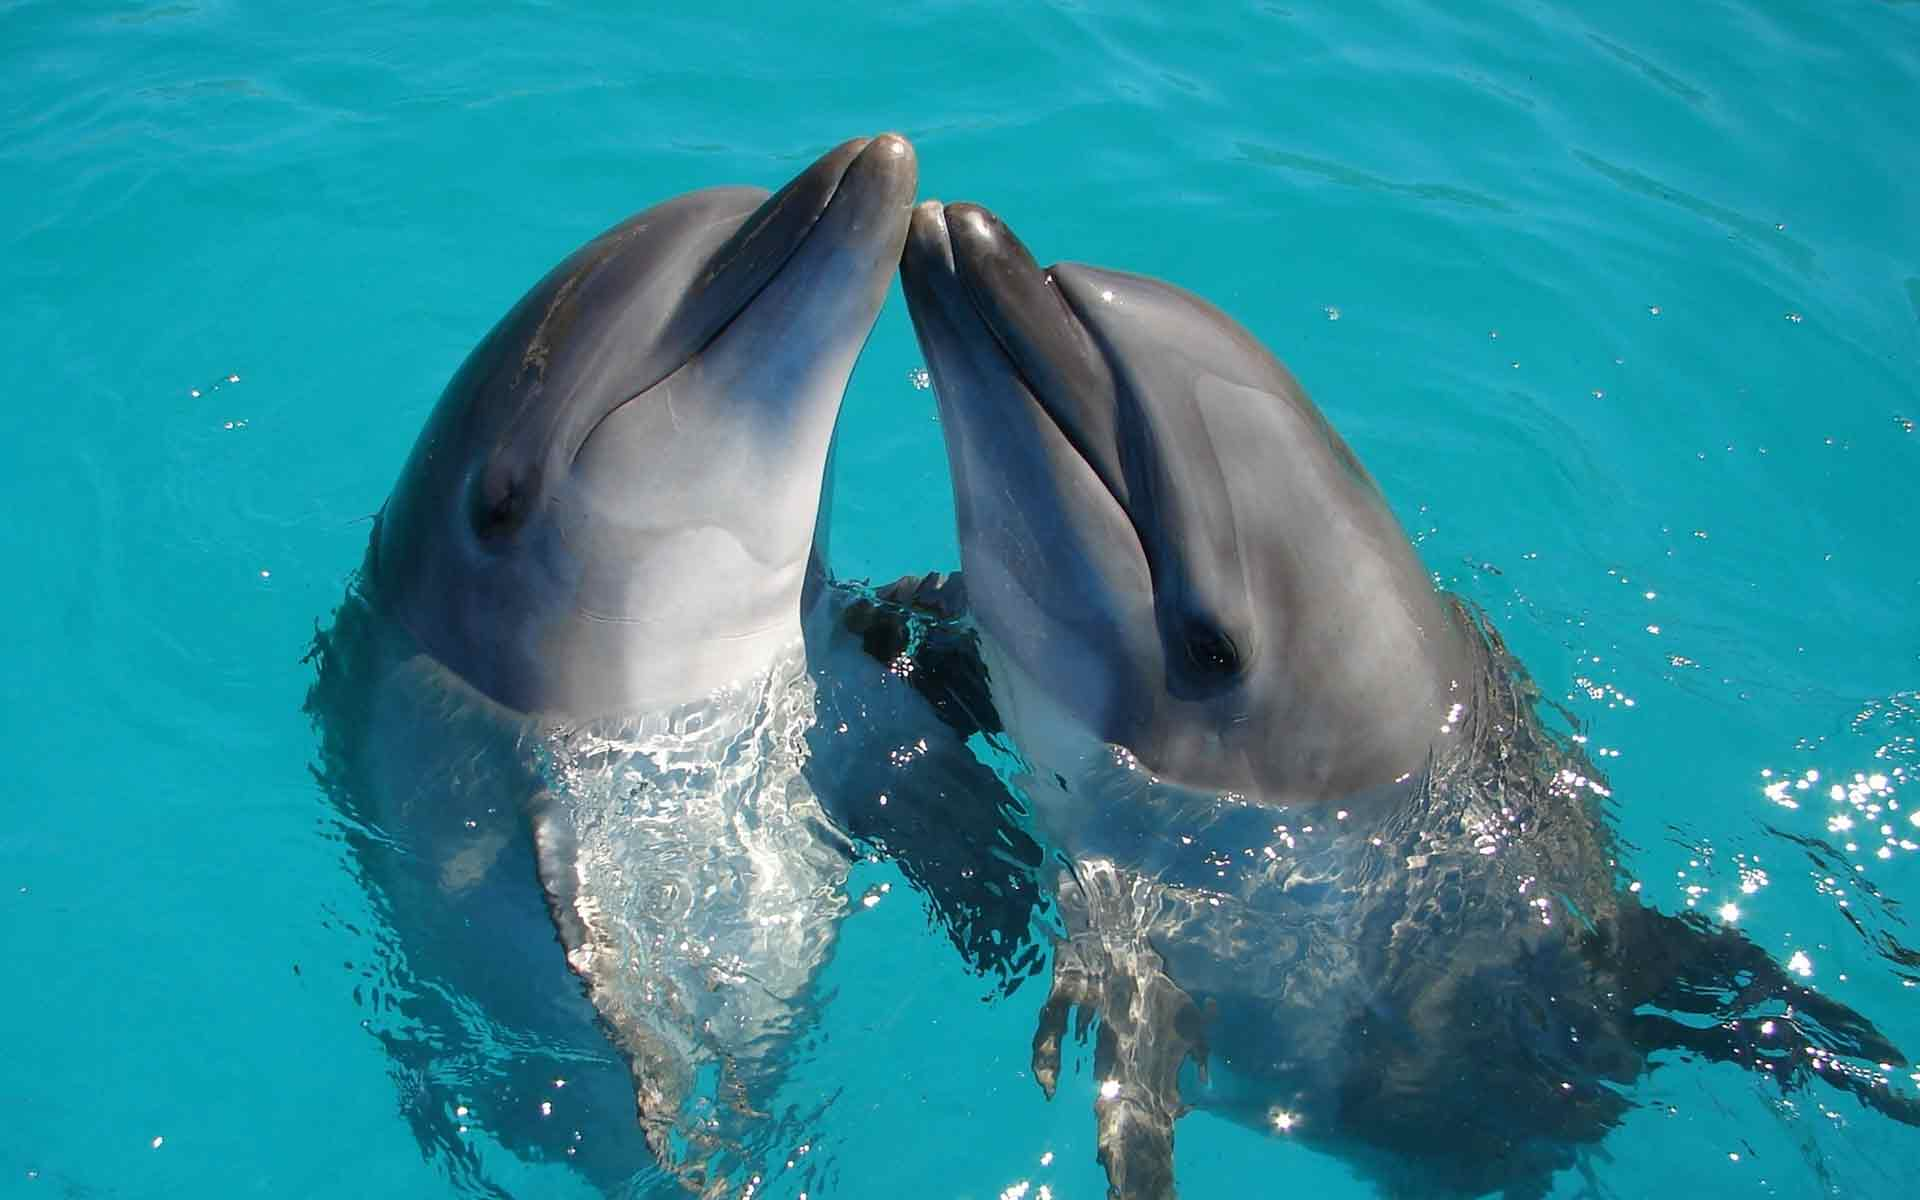 Dolphins playing. Photo by Ranae Smith on Unsplash.